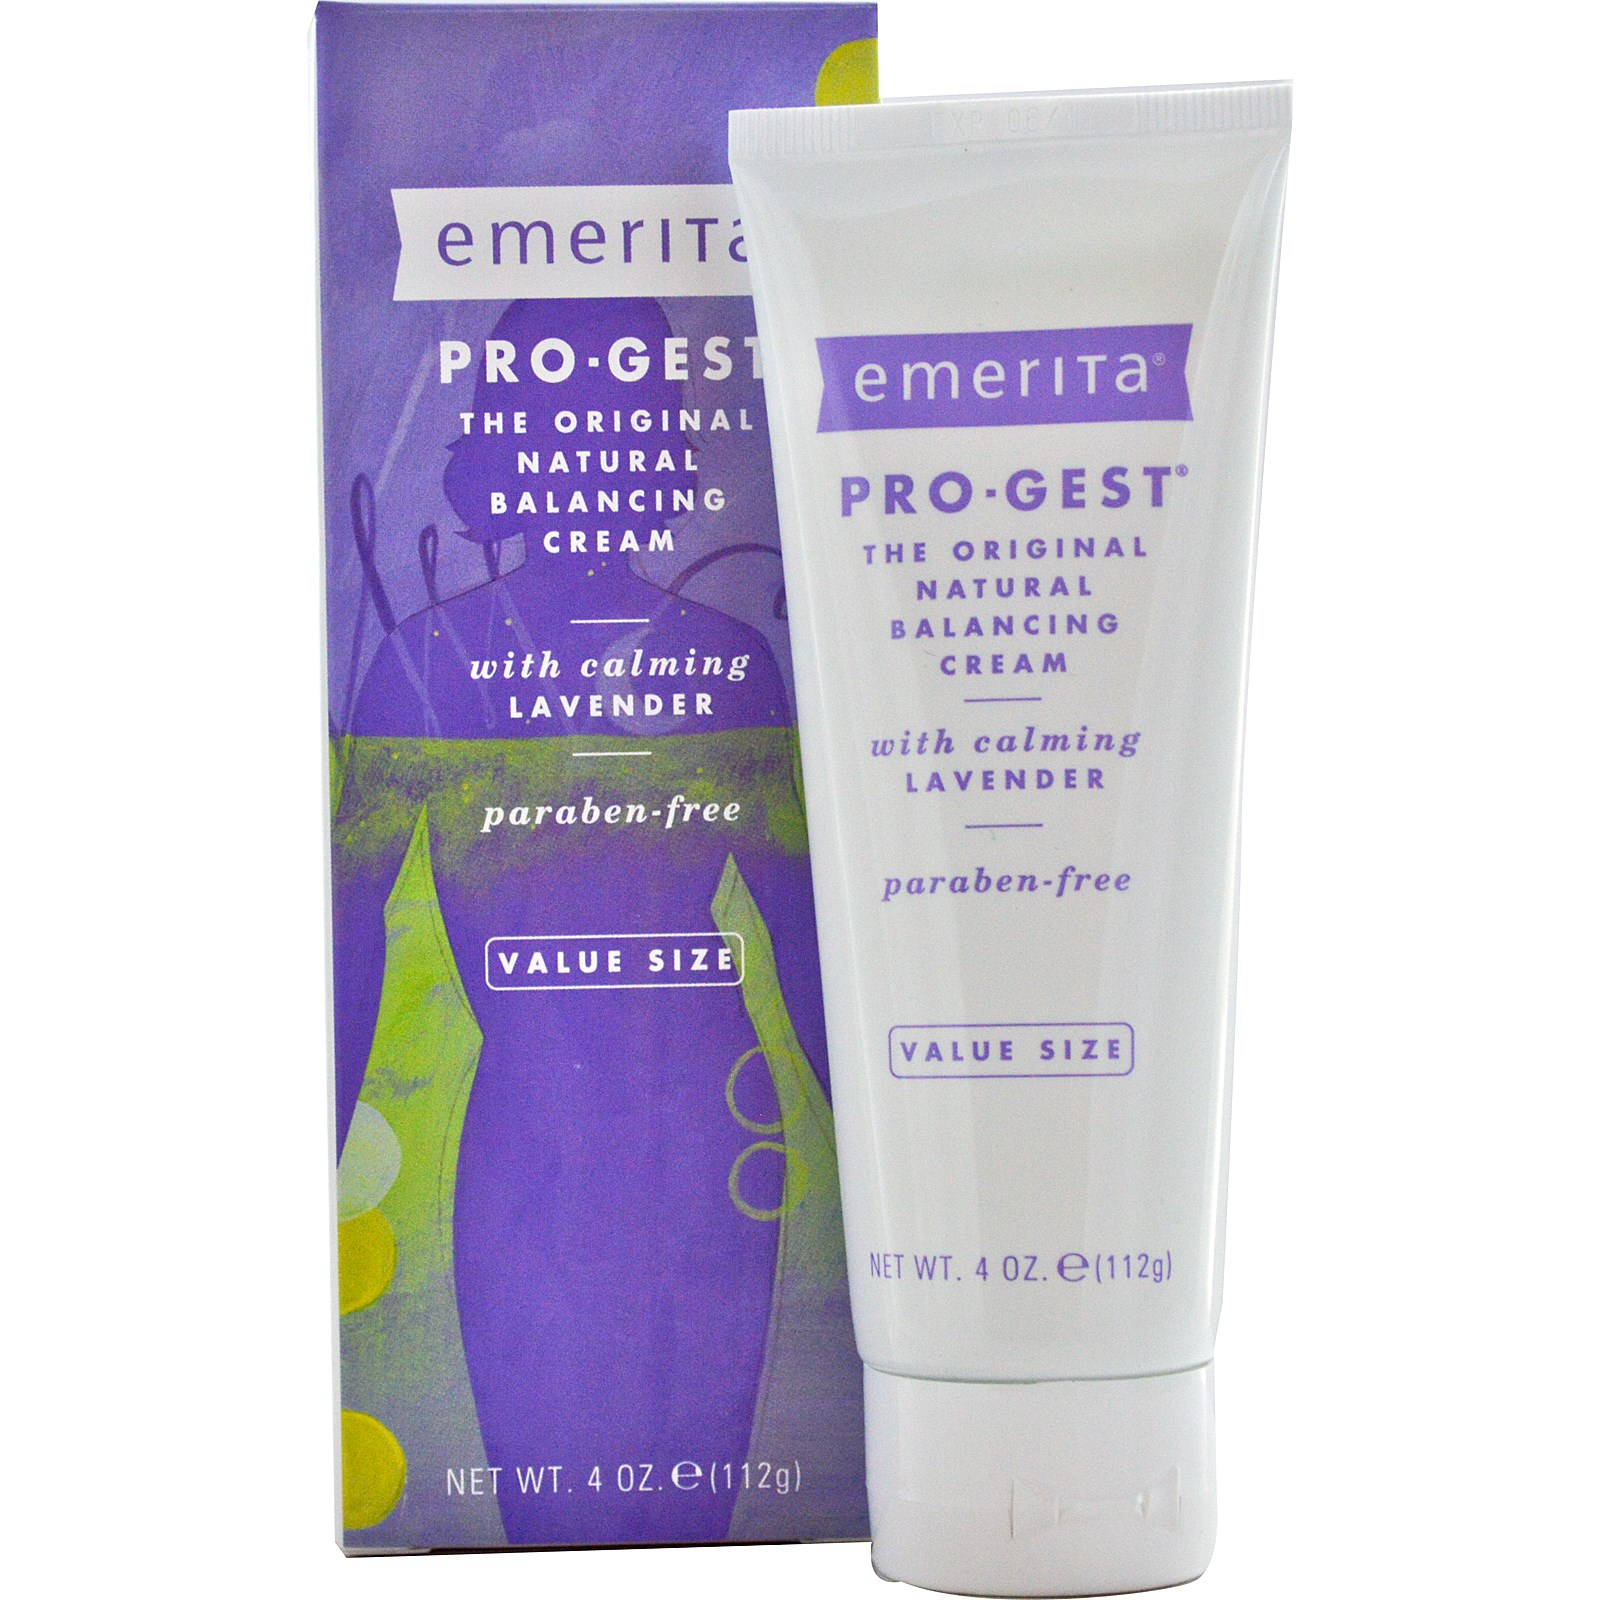 EMERITA Pro-Gest Balancing Cream with Calming Lavender 4 oz